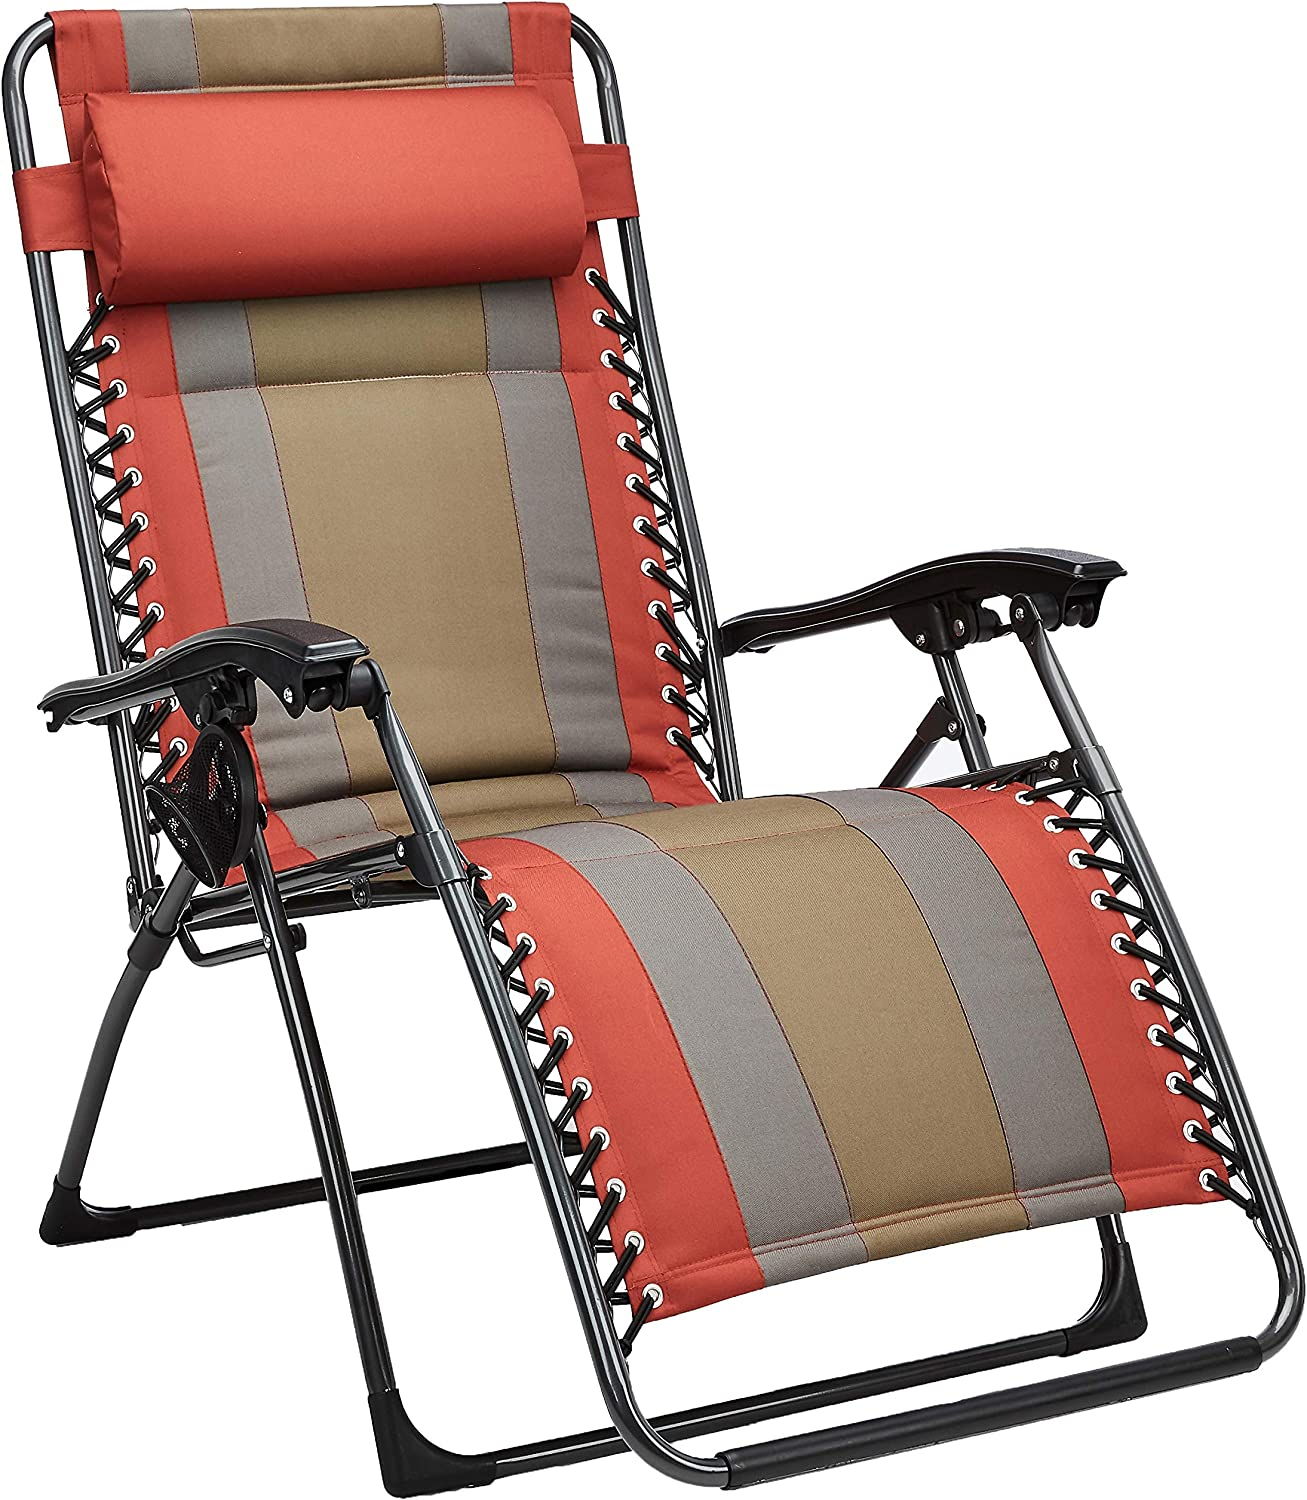 AmazonBasics Outdoor Padded Zero Gravity Lounge Beach Chair - 65 x 29.5 x 44.1 Inches, Red